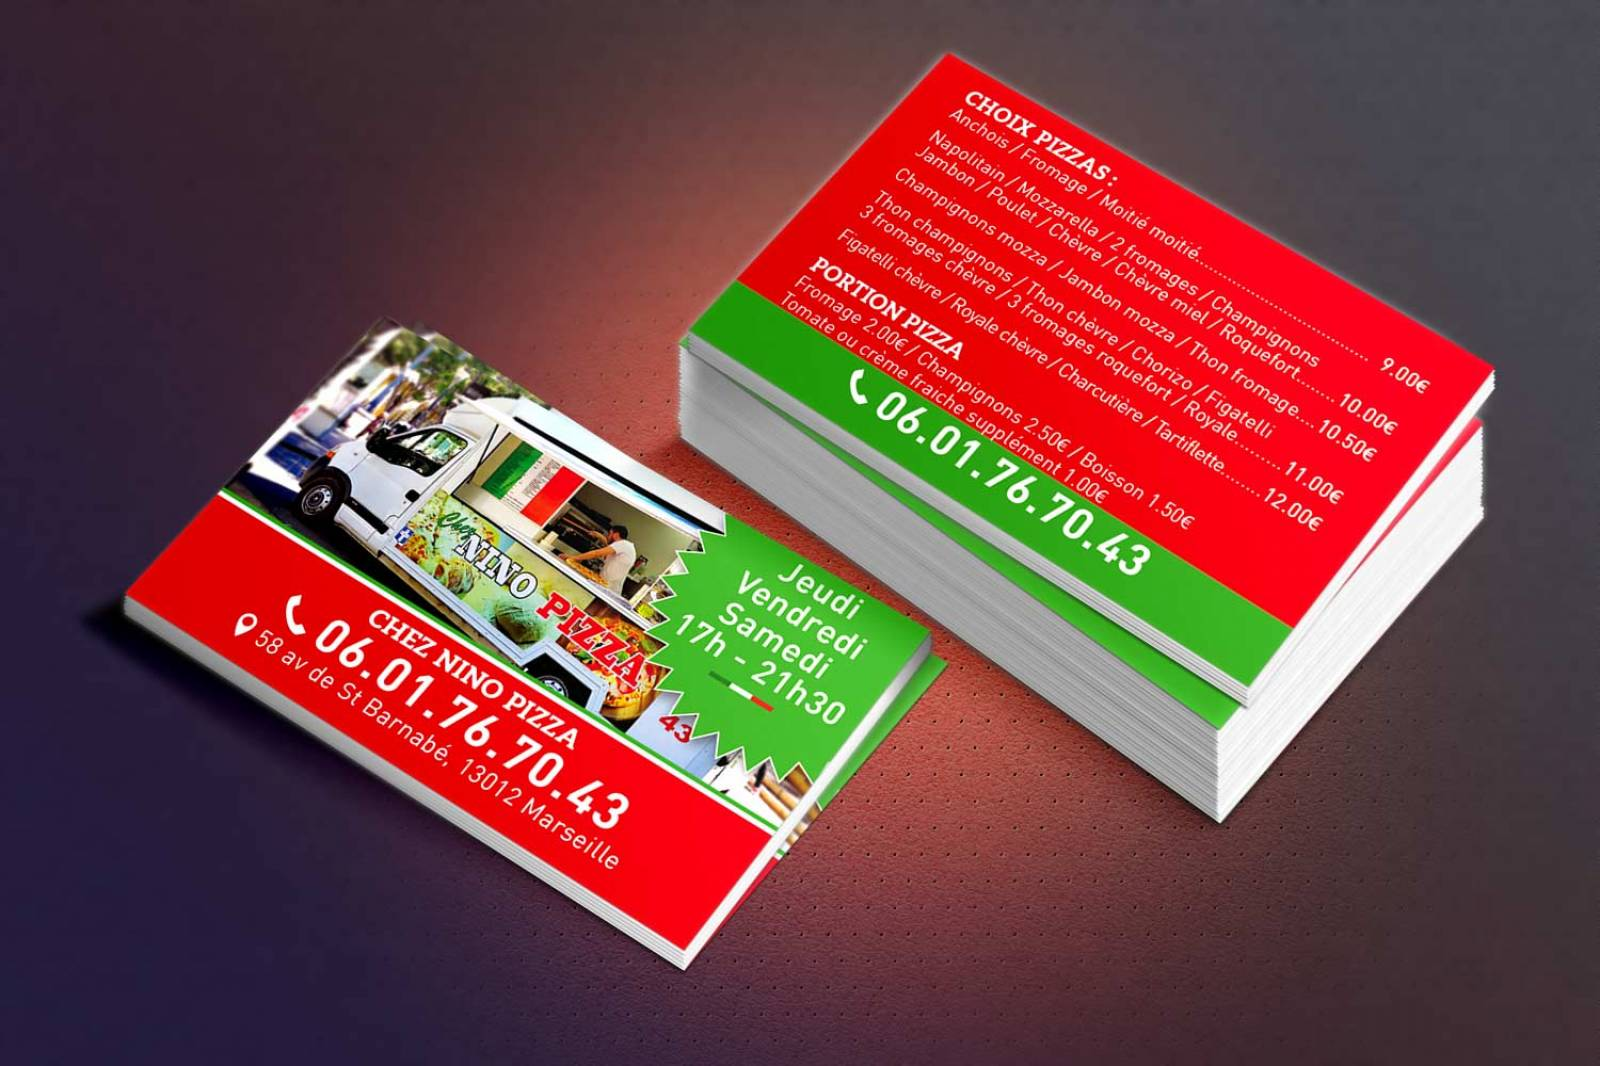 Cration Graphique Et Impression De Cartes Visite